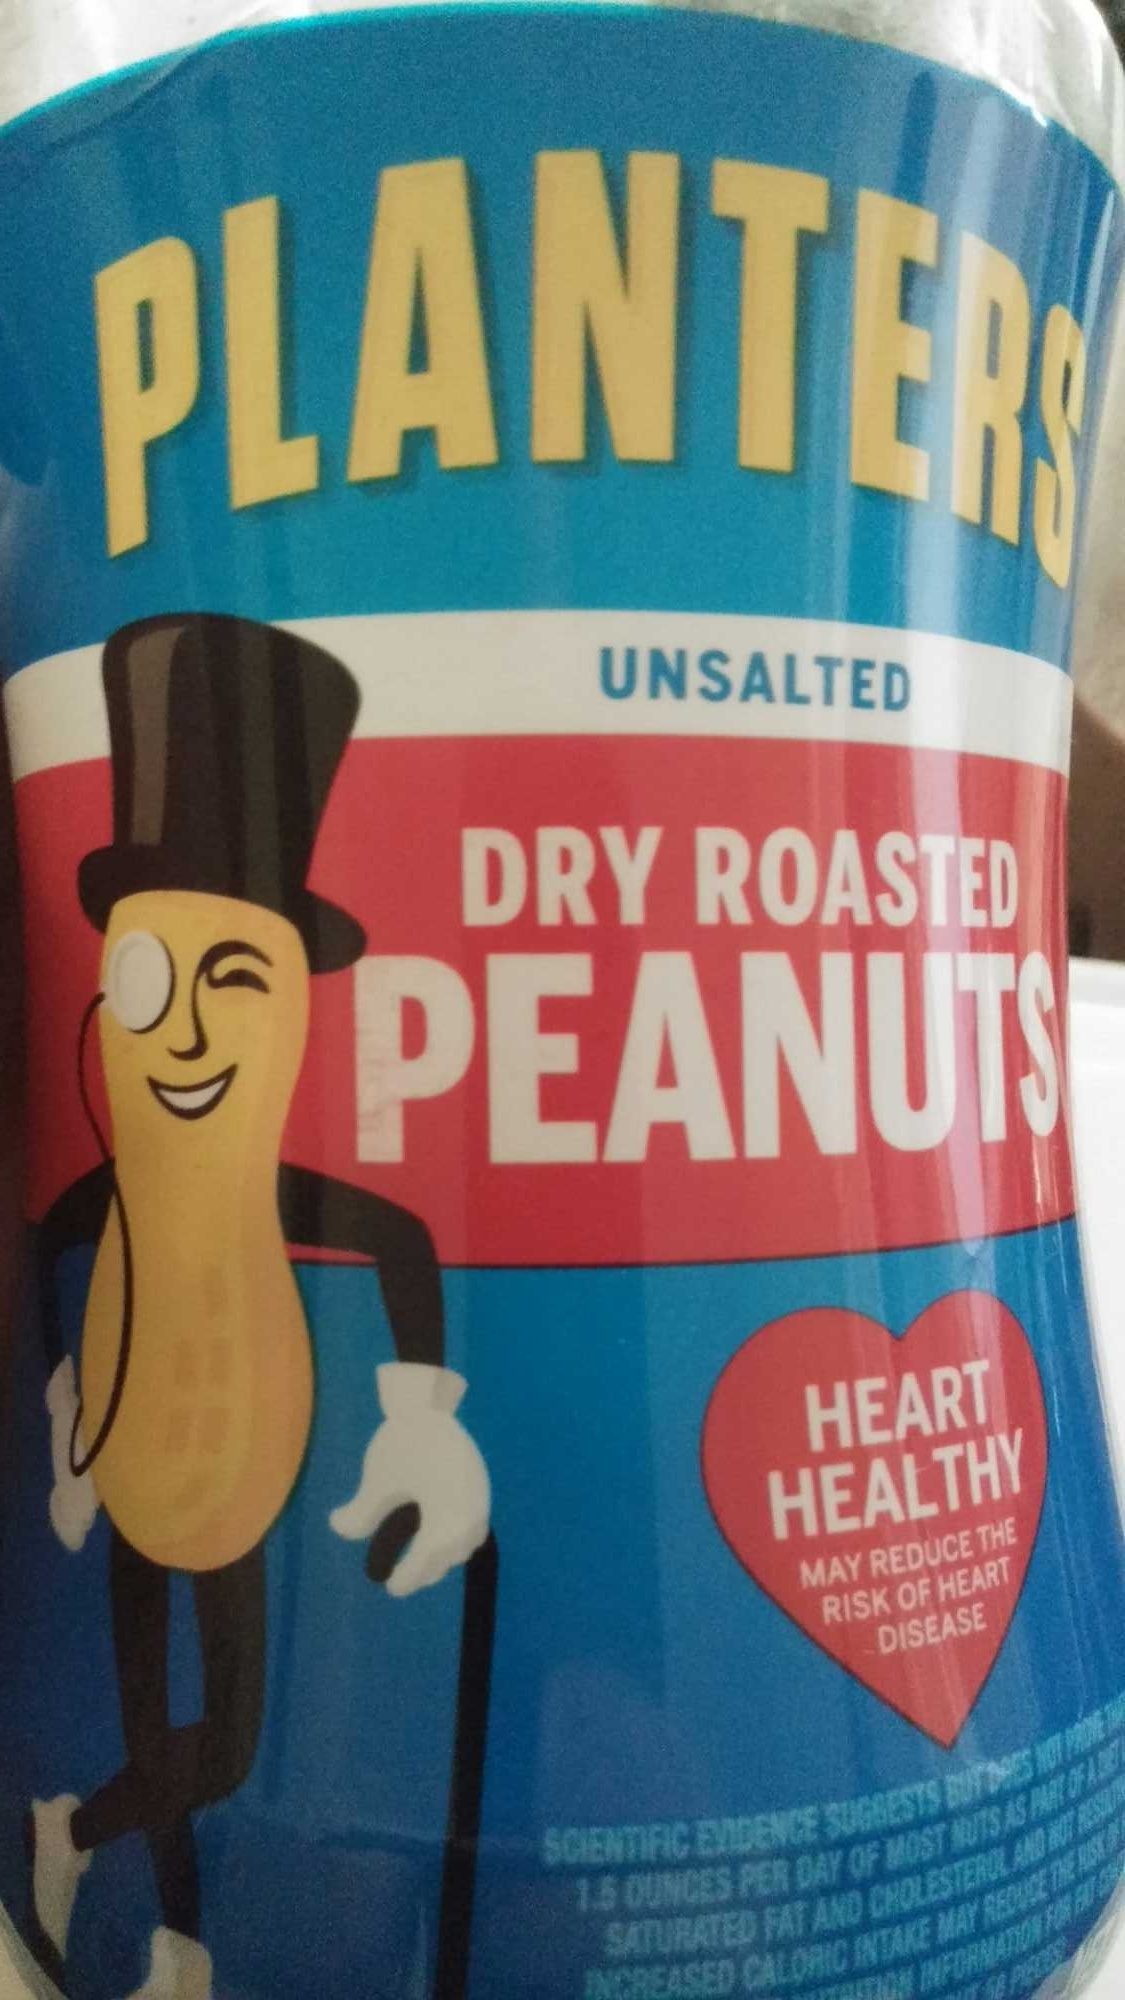 Unsalted dry roasted peanuts, unsalted - Product - en